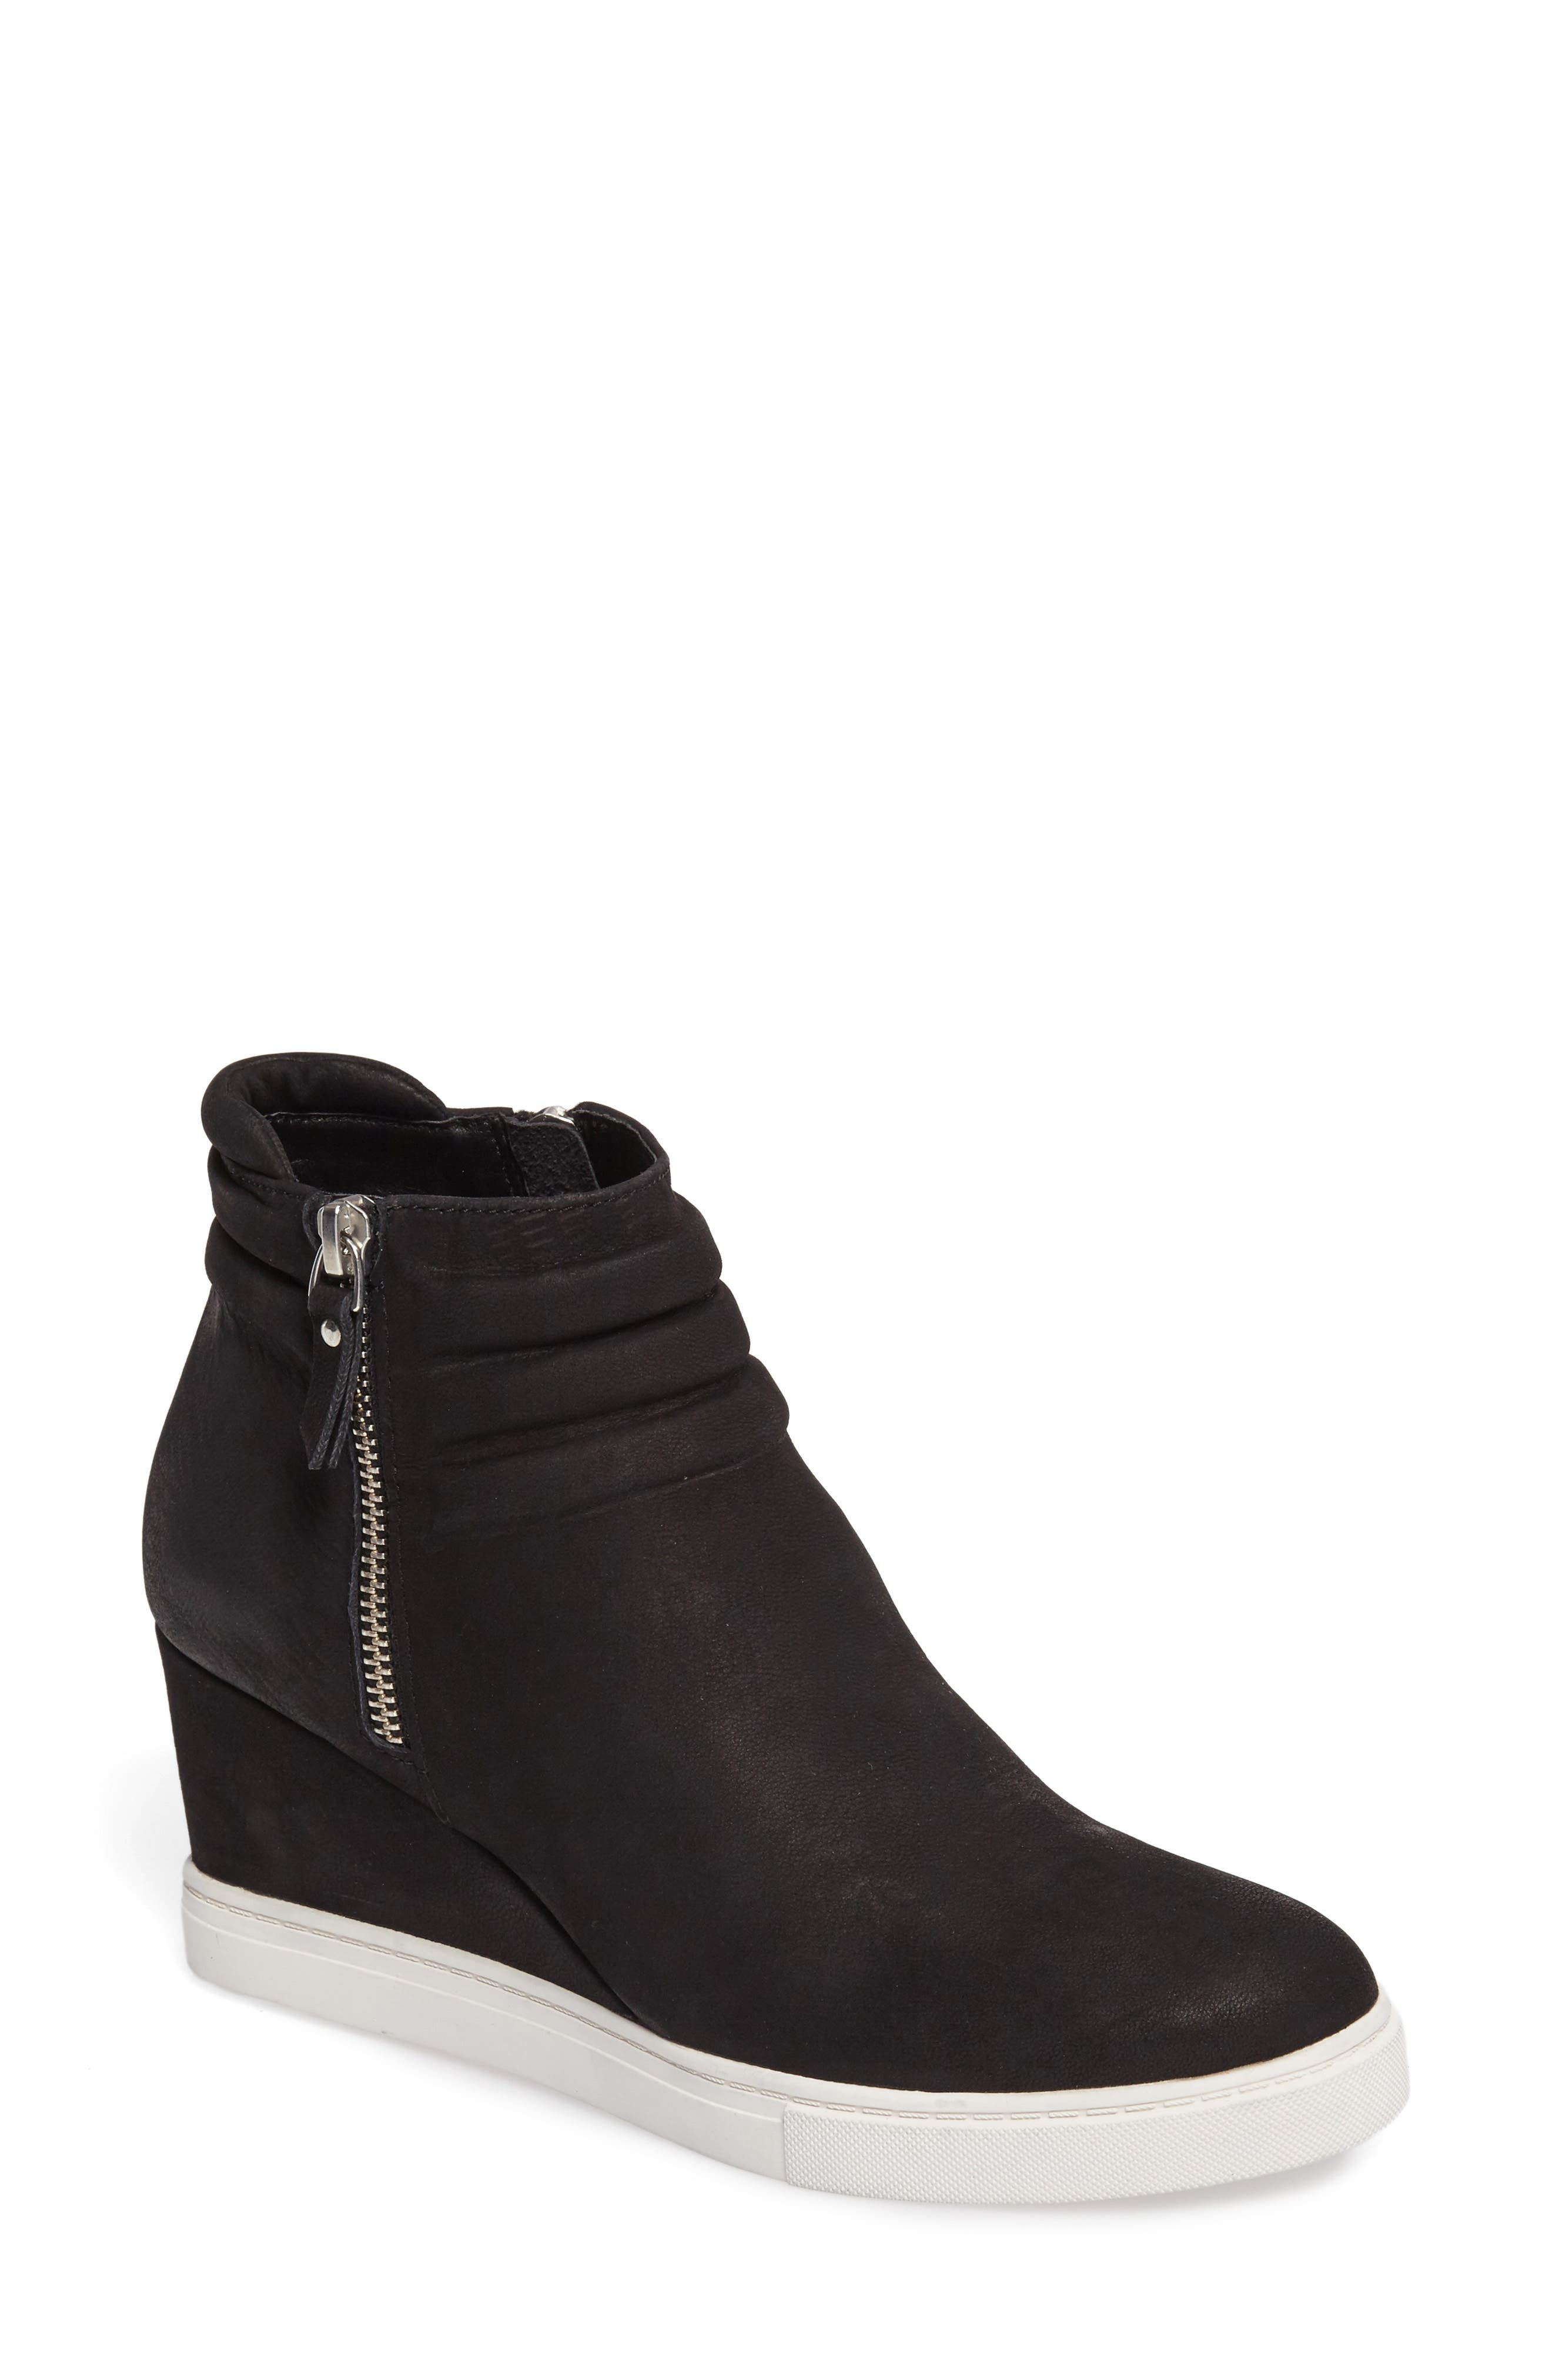 Frieda Wedge Bootie,                             Main thumbnail 1, color,                             BLACK LEATHER